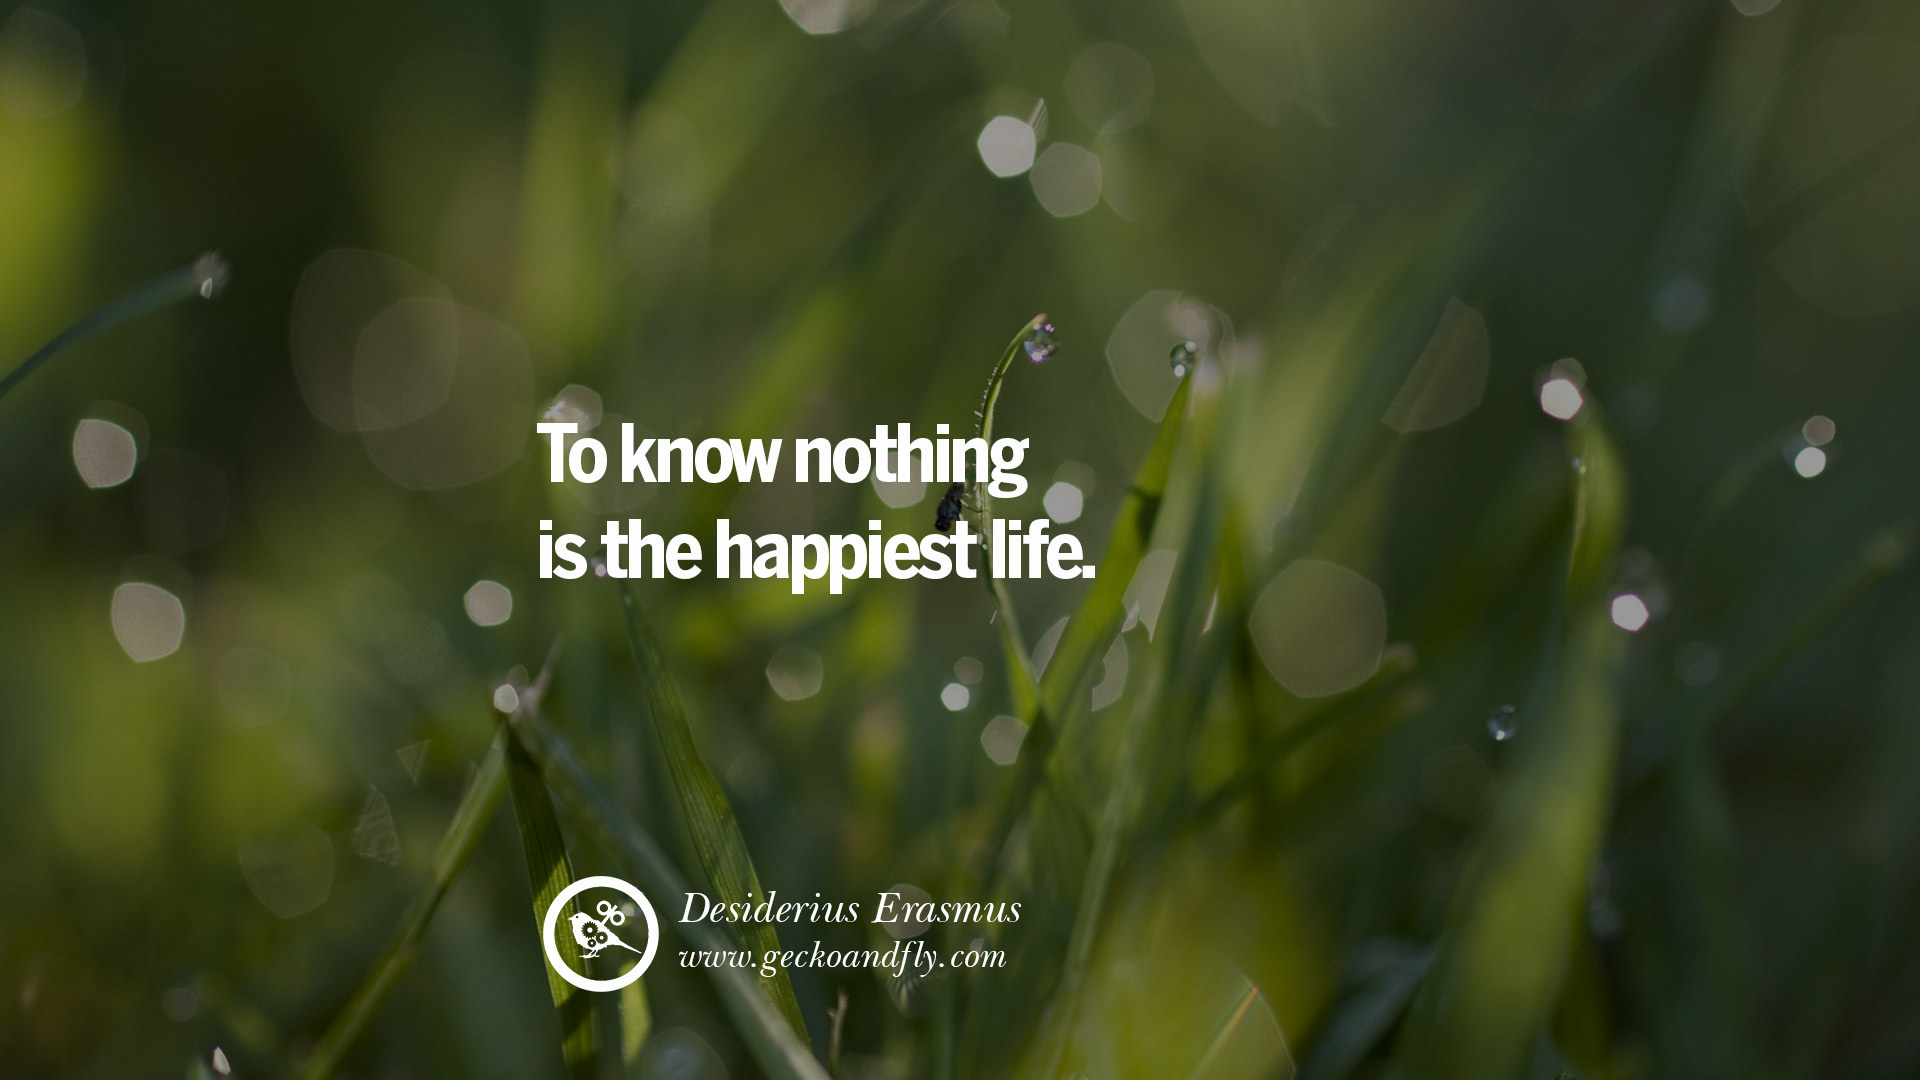 20 Inspirational Quotes About Life Sayings, Love And Happiness [ Part 2 ]